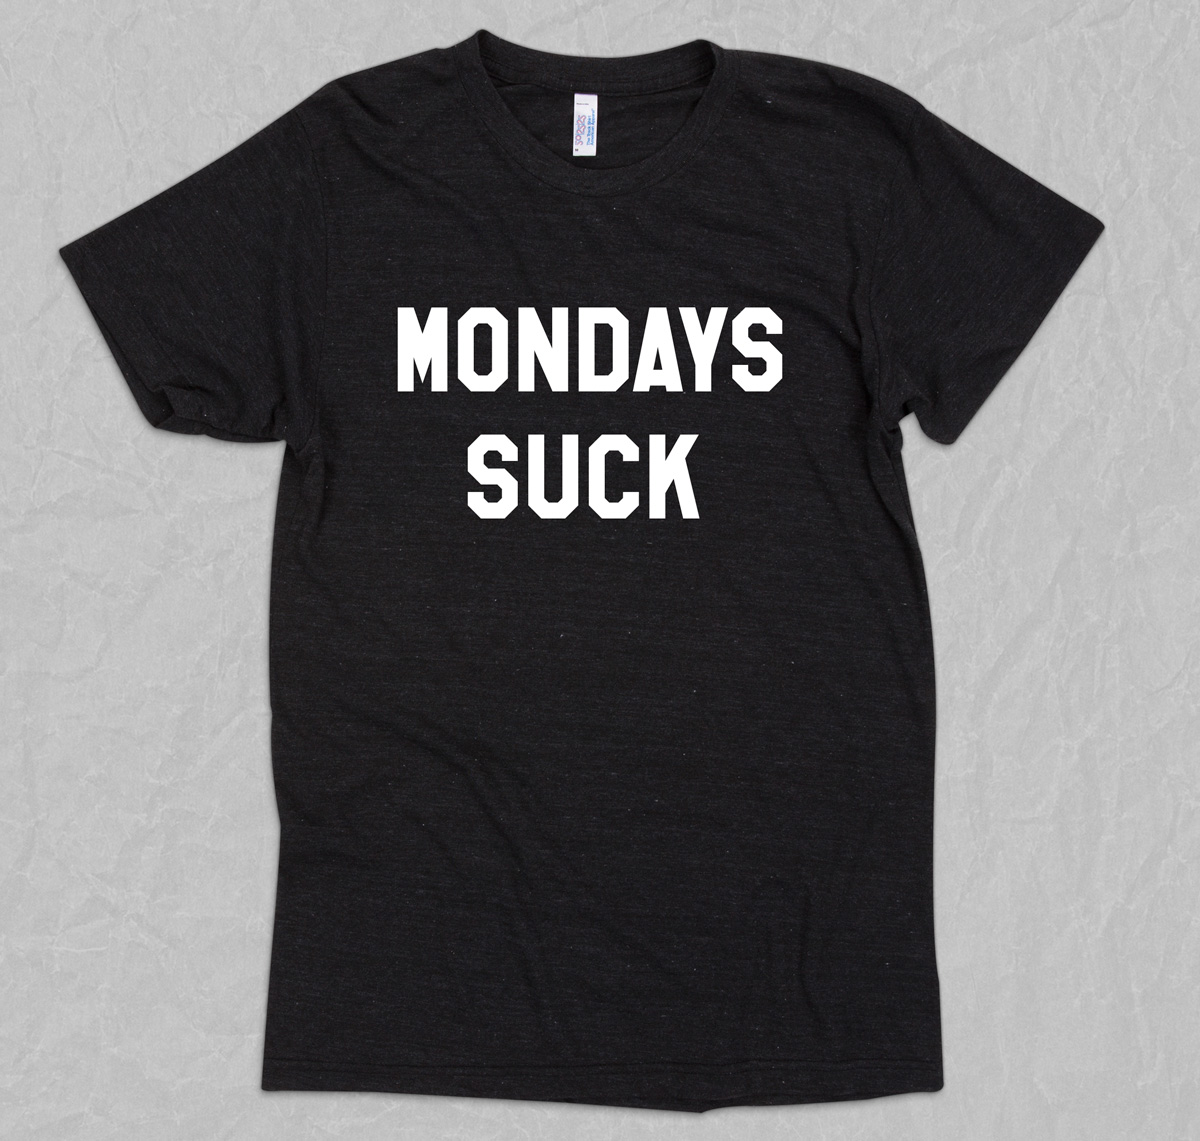 6b947705 Mondays Suck - I Hate Monday T-shirt, Humorous Sarcastic Quotes Tees ...